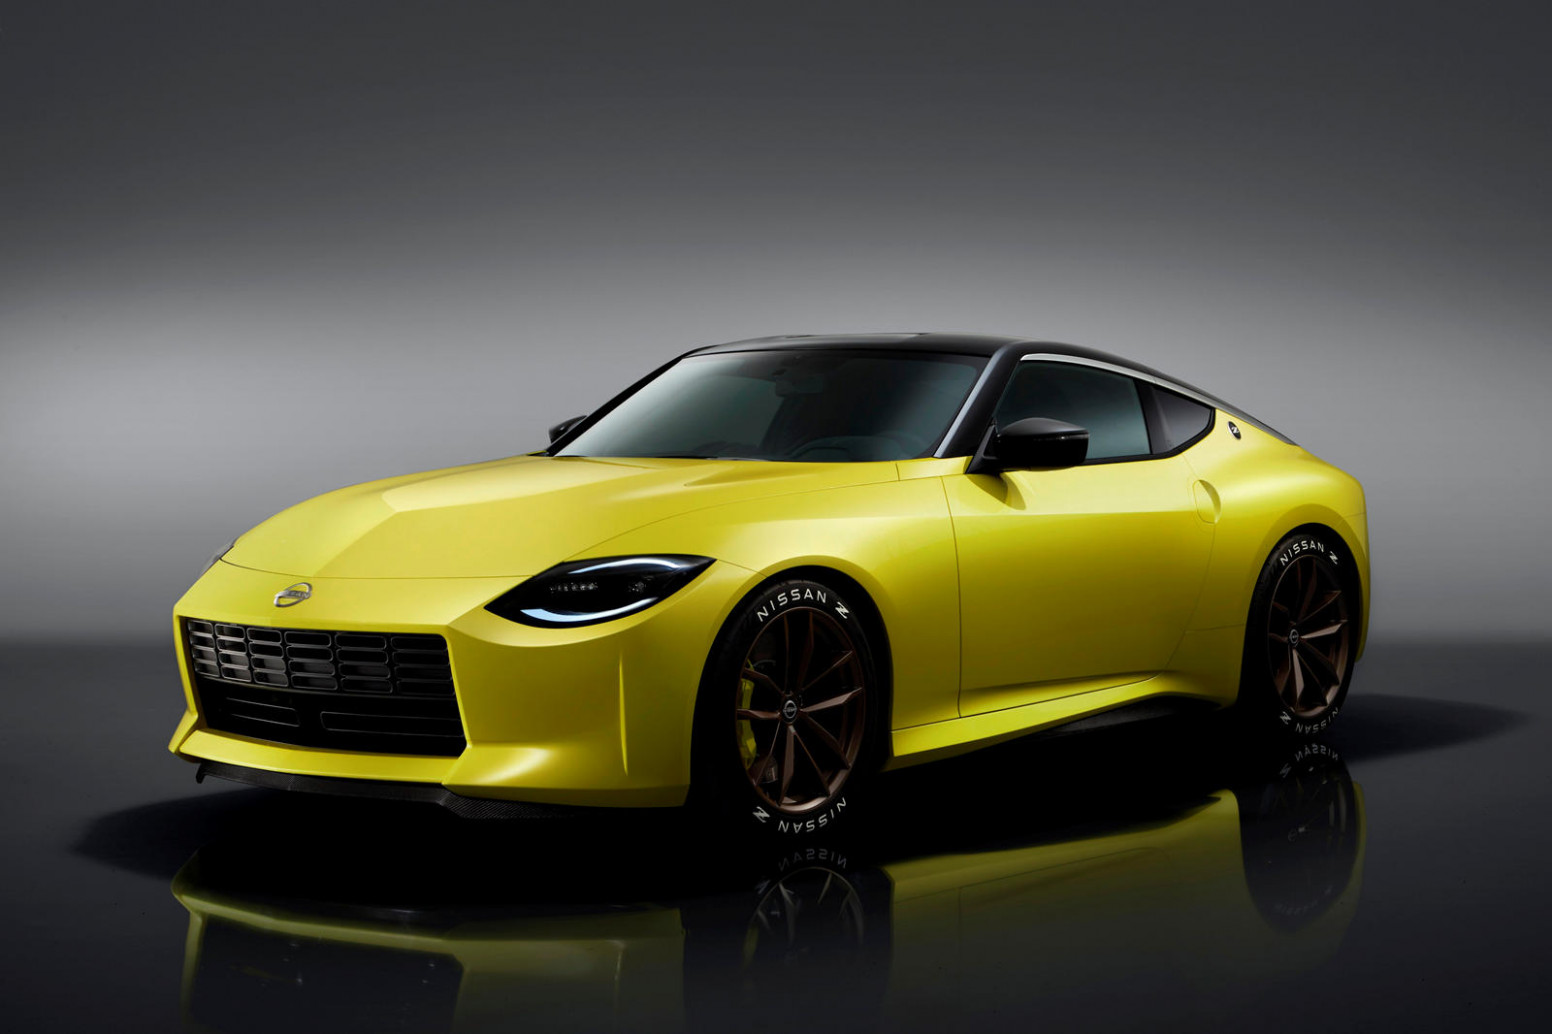 Redesign and Review 2022 Nissan Z Turbo Nismo